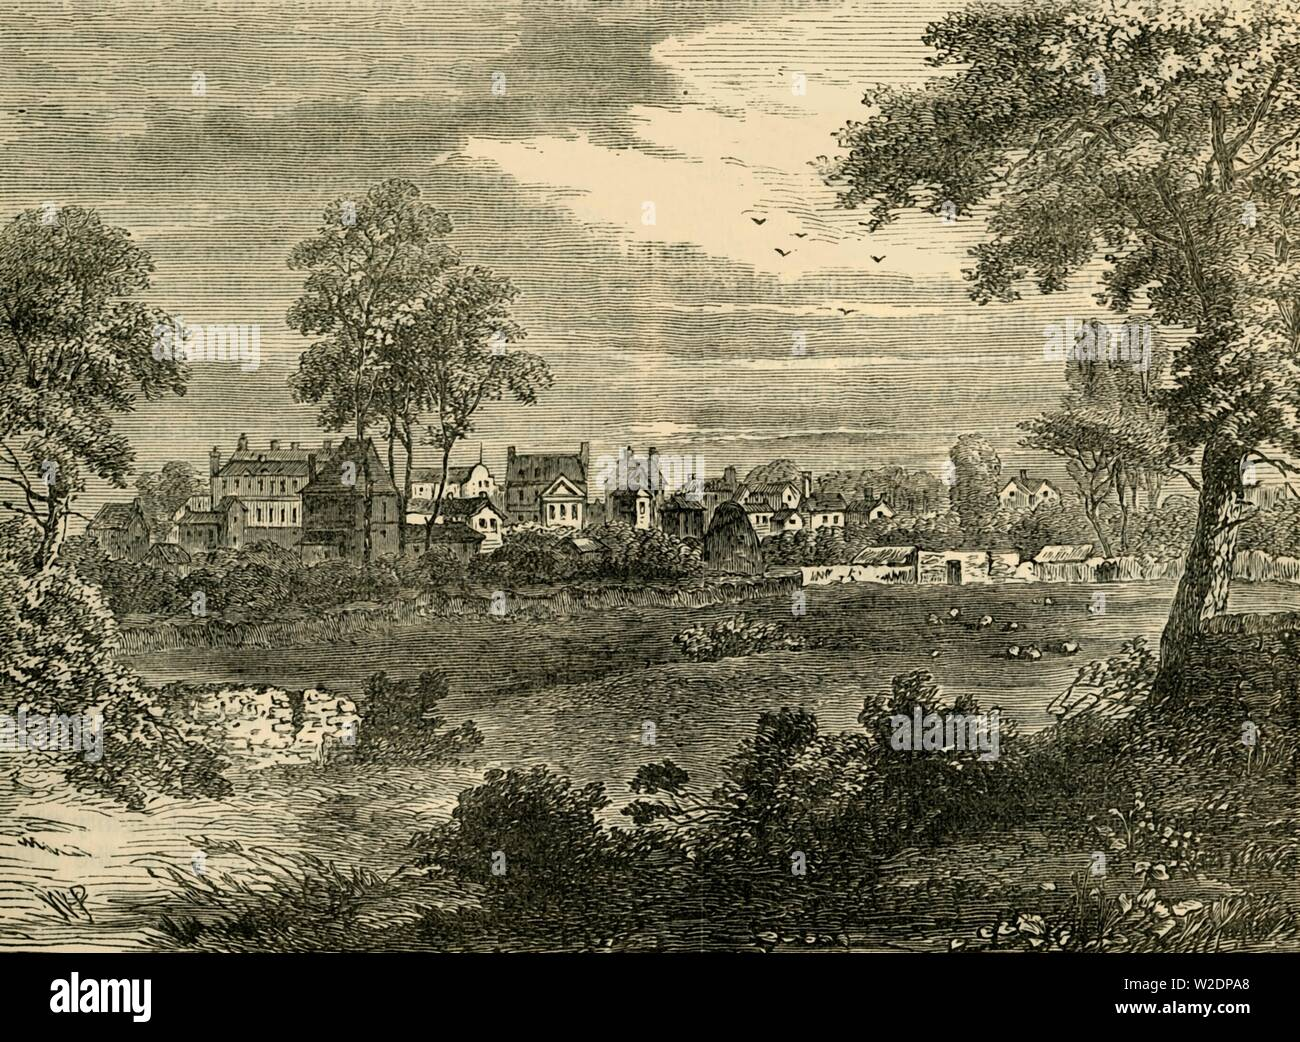 """'Old View of Kensington, about 1750', (c1876). Kensington, was a suburb of London and birth-place of Queen Victoria with conveyancing of property passing between Earls.  From """"Old and New London: A Narrative of Its History, Its People, and Its Places. The Western and Northern Studies"""", by Edward Walford. [Cassell, Petter, Galpin & Co., London, Paris & New York] - Stock Image"""